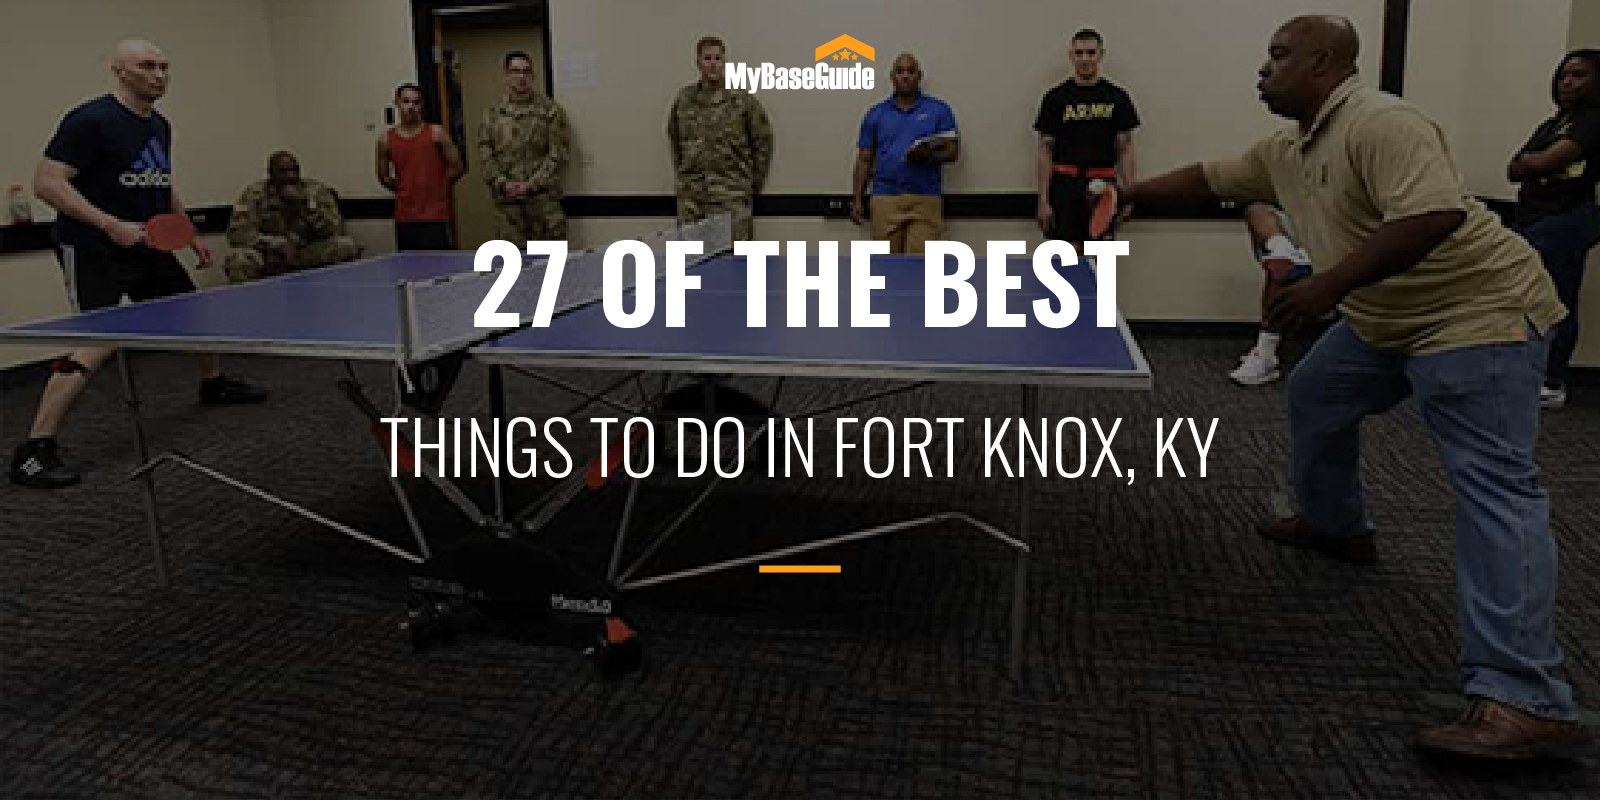 Best Things to Do Fort Knox